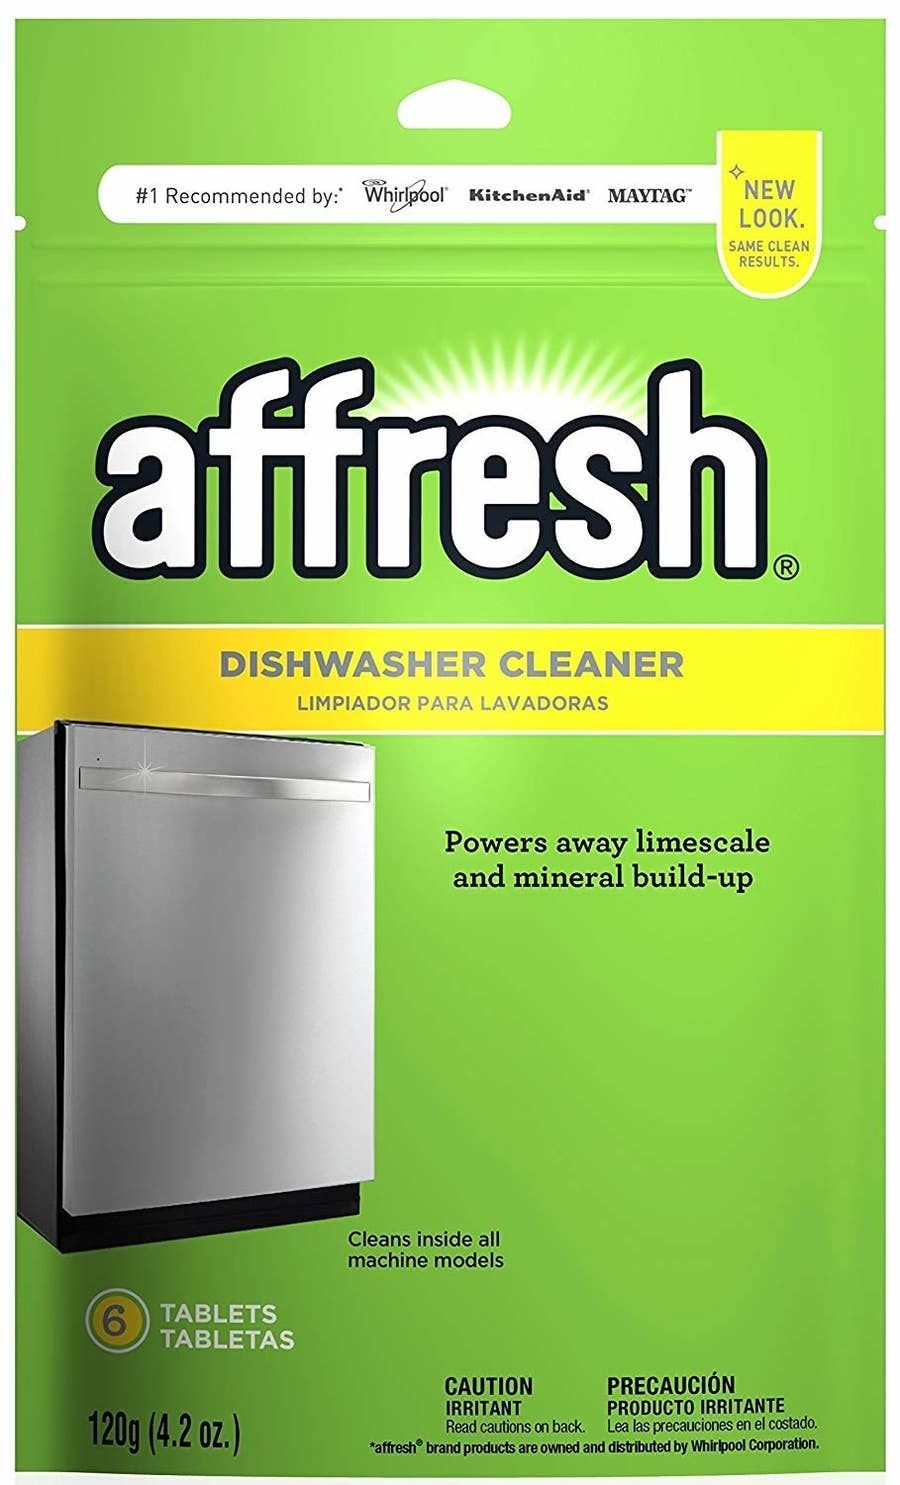 how to clean whirlpool washer with affresh